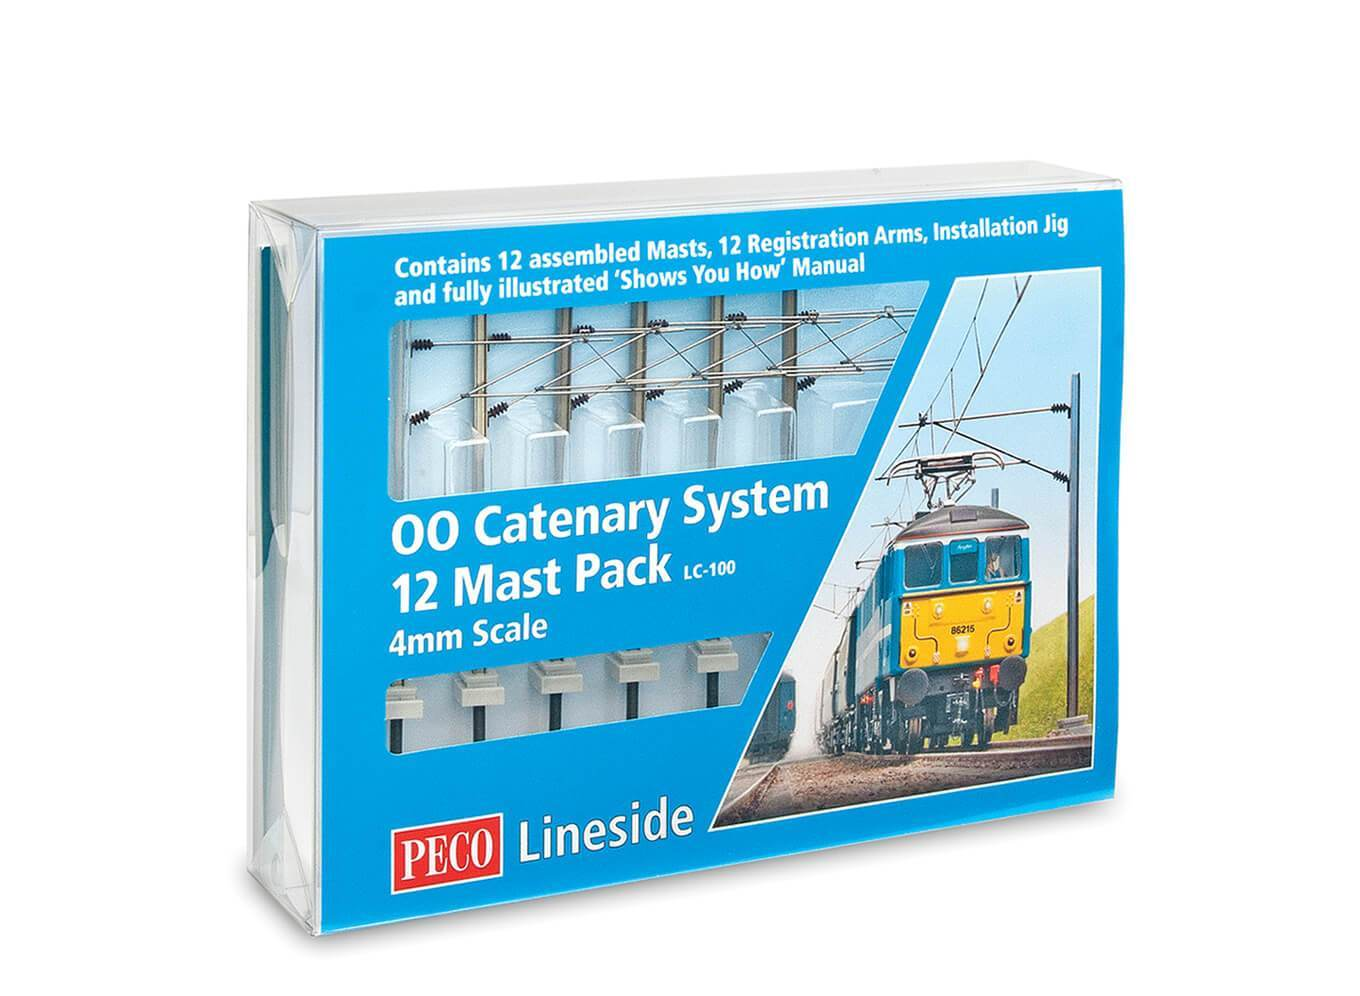 LC-100 Catenary System Startup Pack